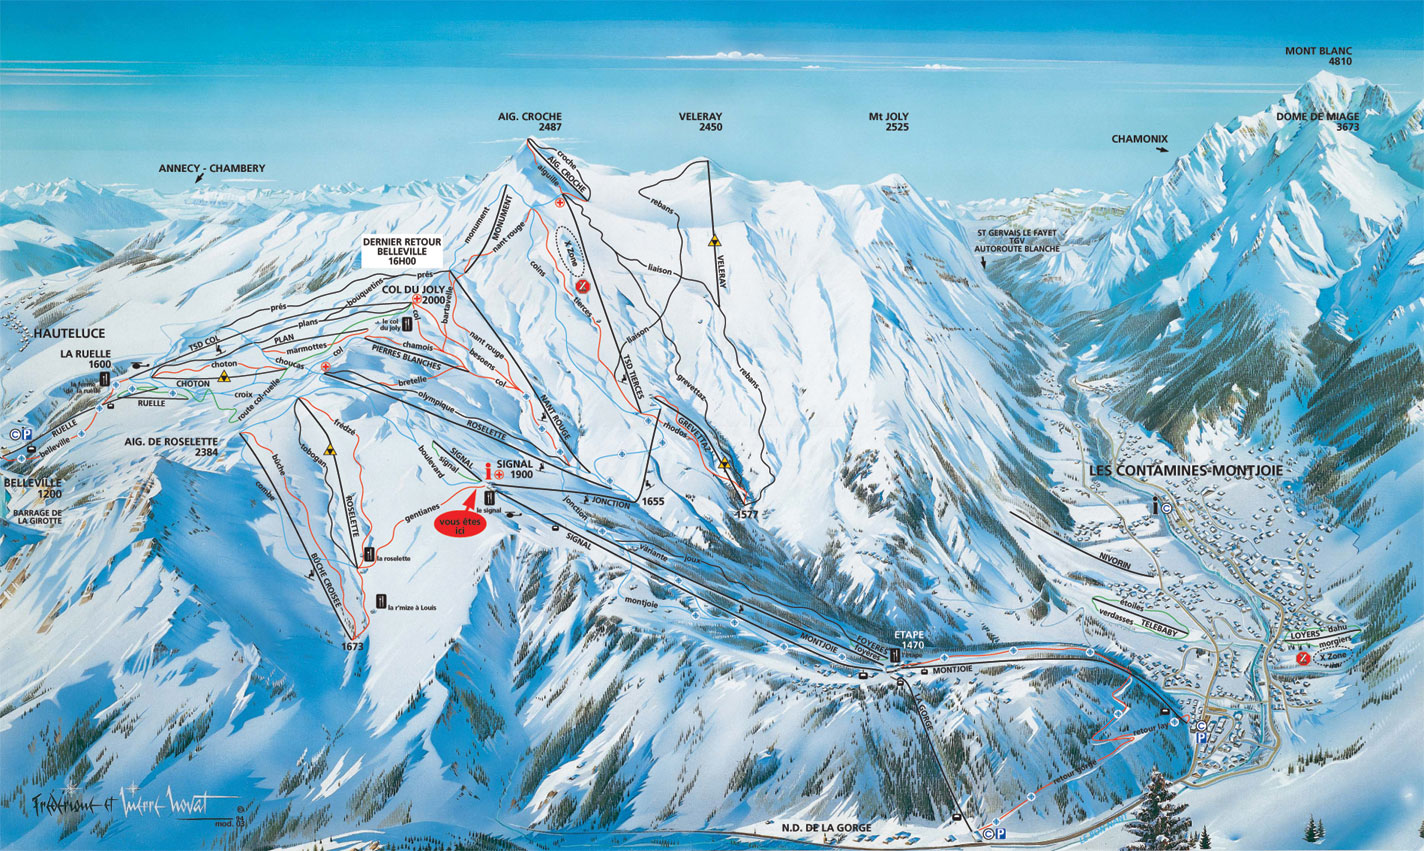 Les Contamines - Montjoie piste map